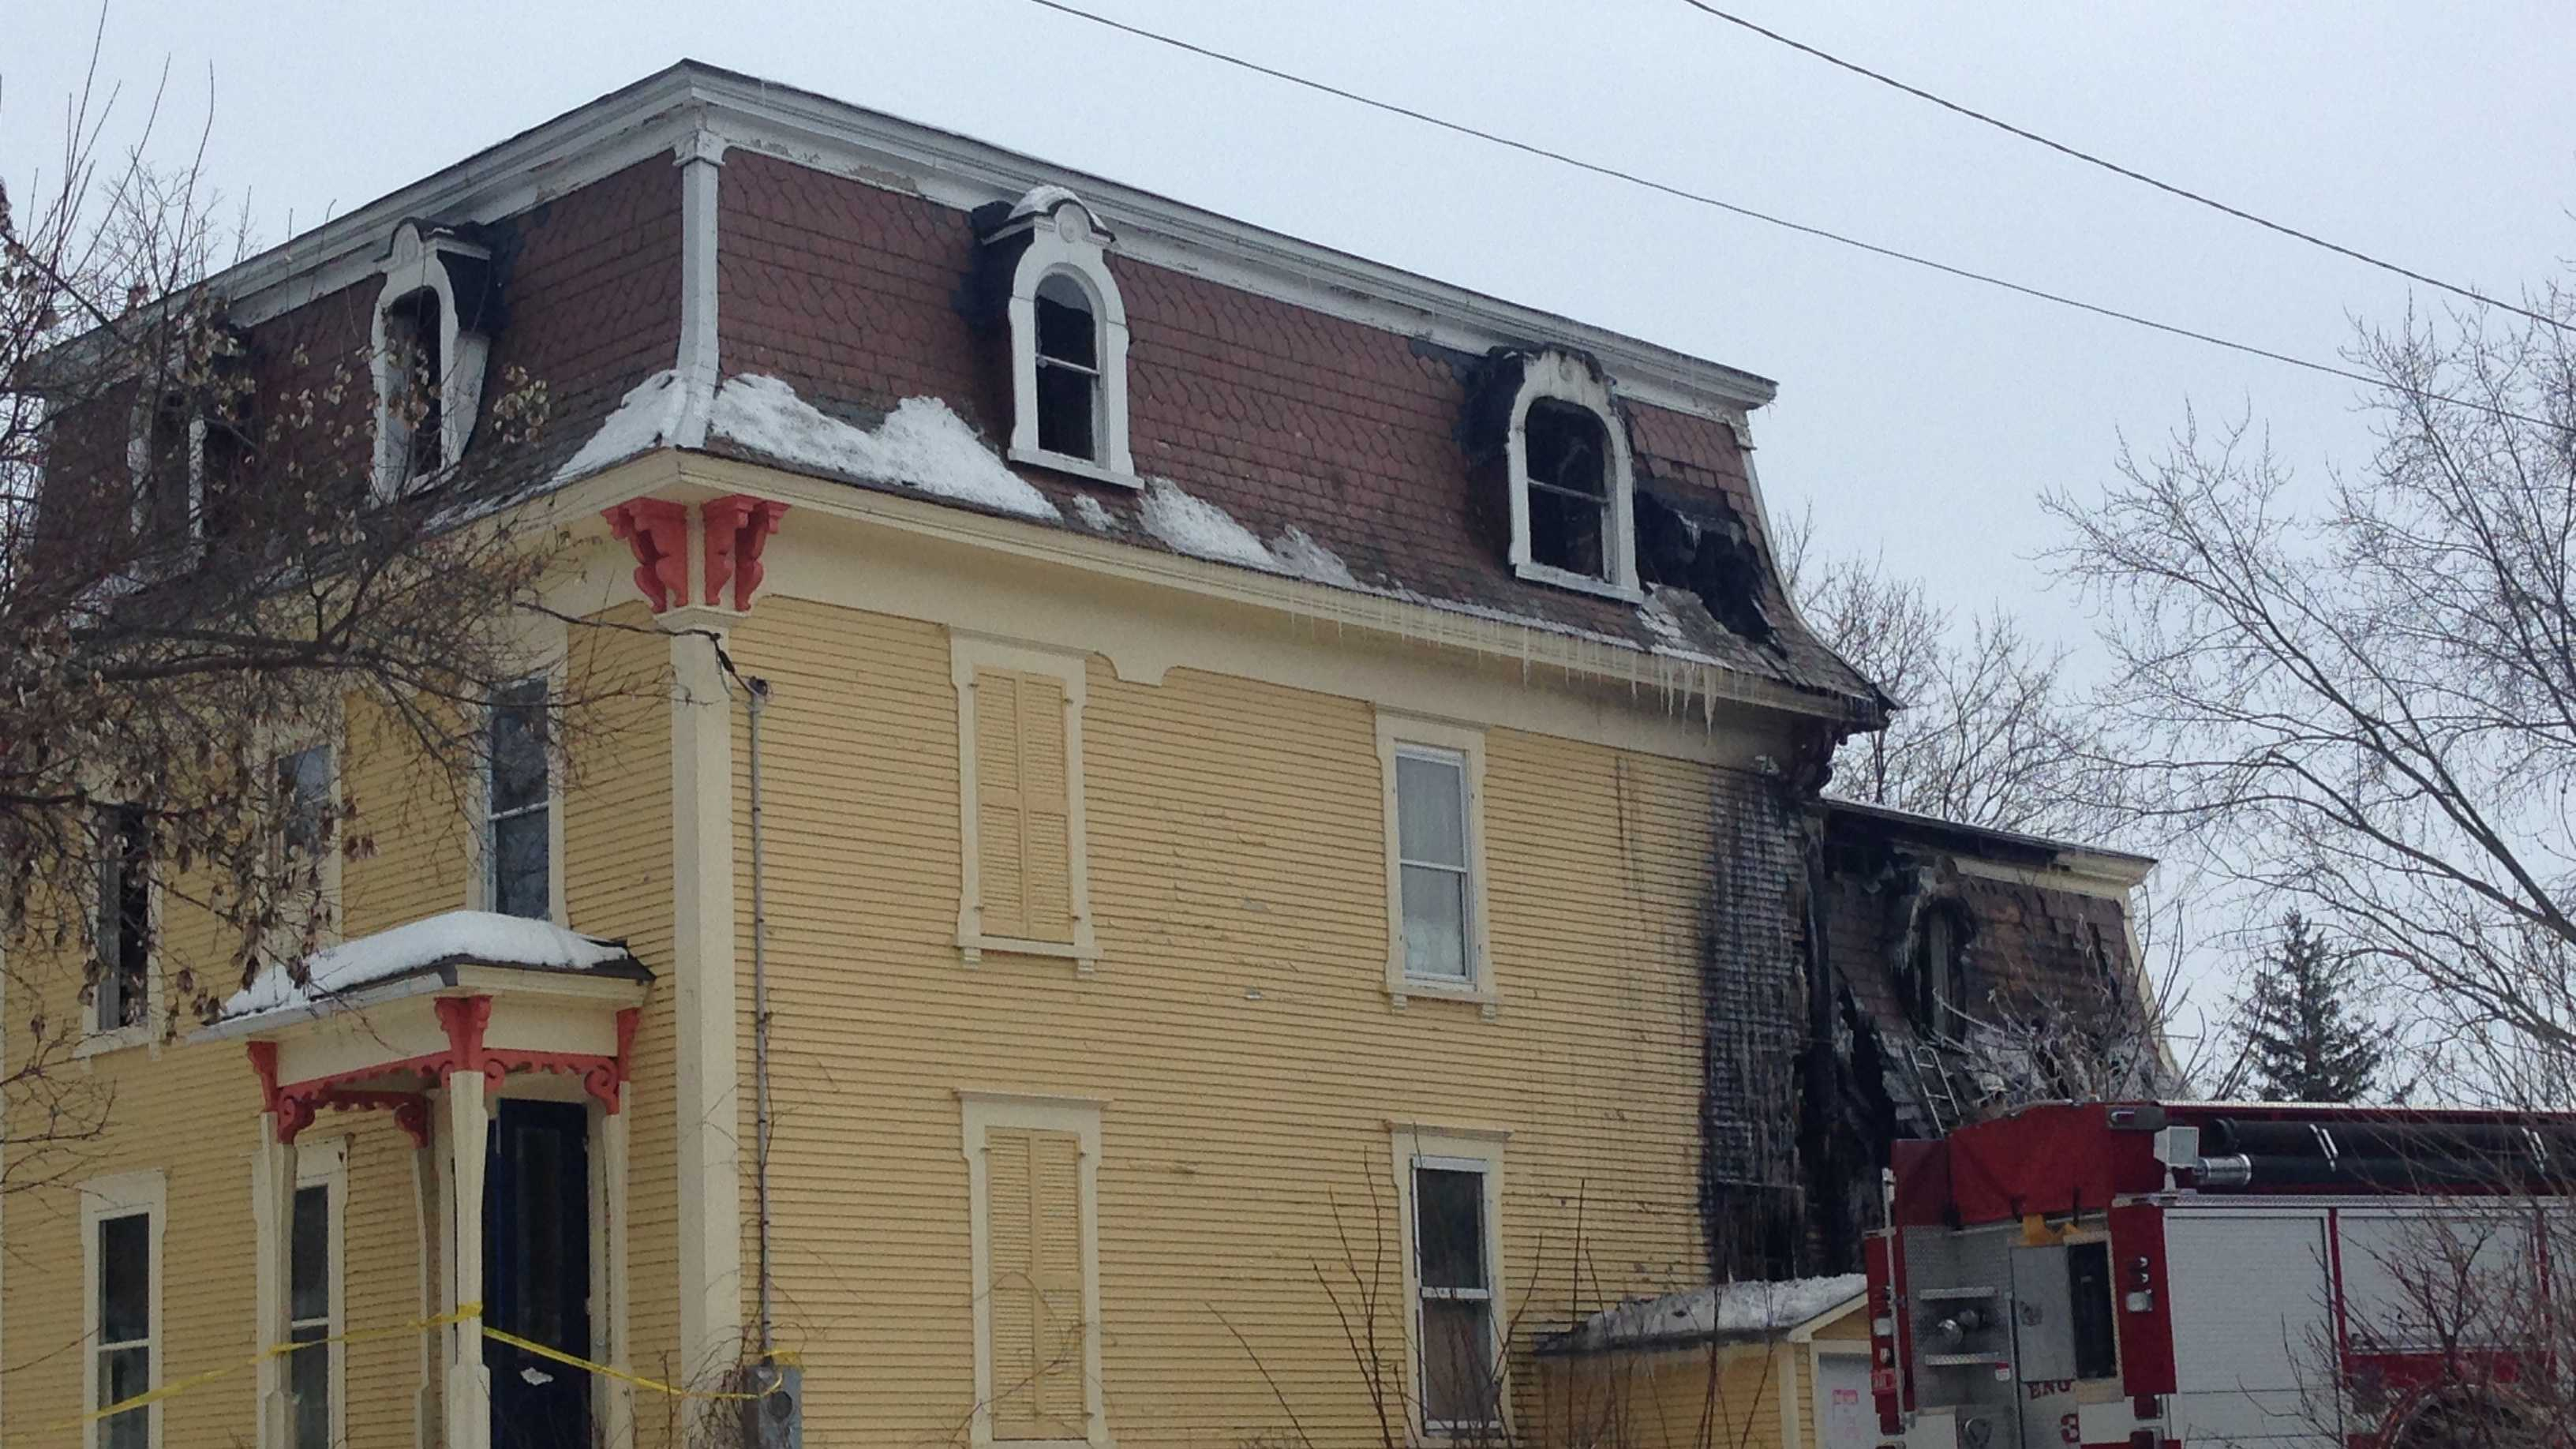 Firefighters worked late Saturday night into Sunday morning after a fire destroys an old apartment building.